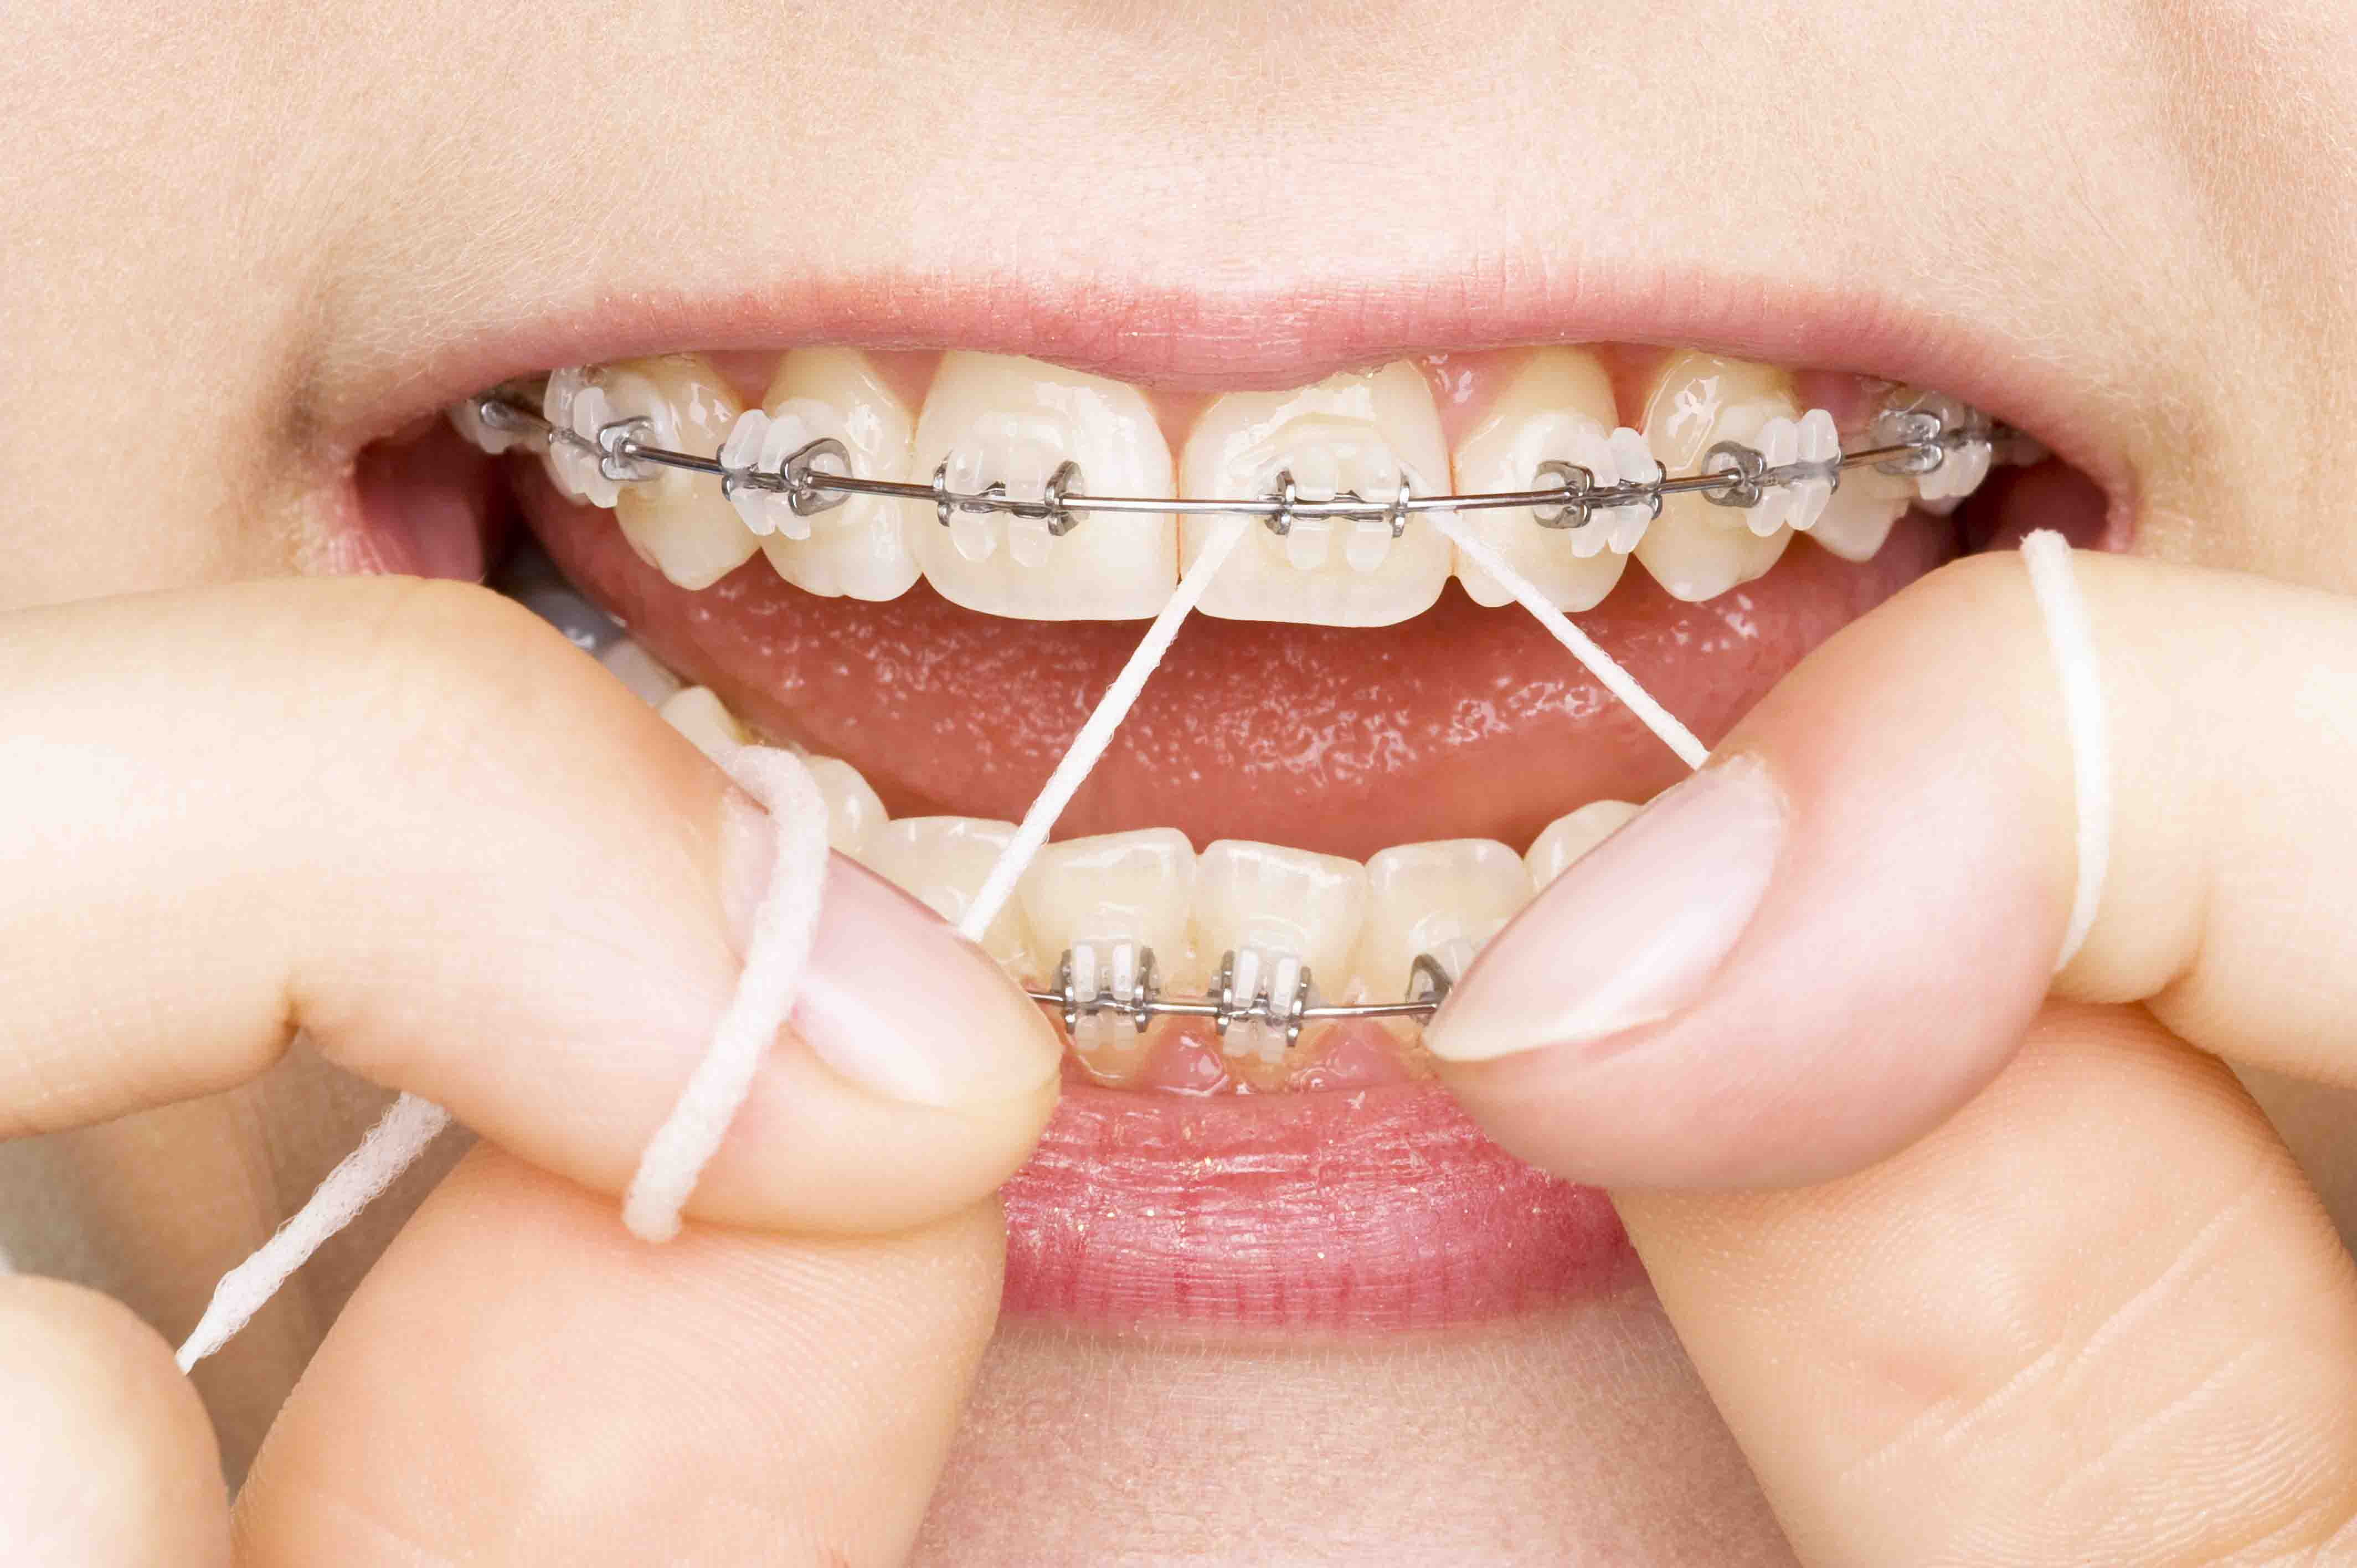 Dental Implants Melbourne - The Best Treatment by The Leading Experts